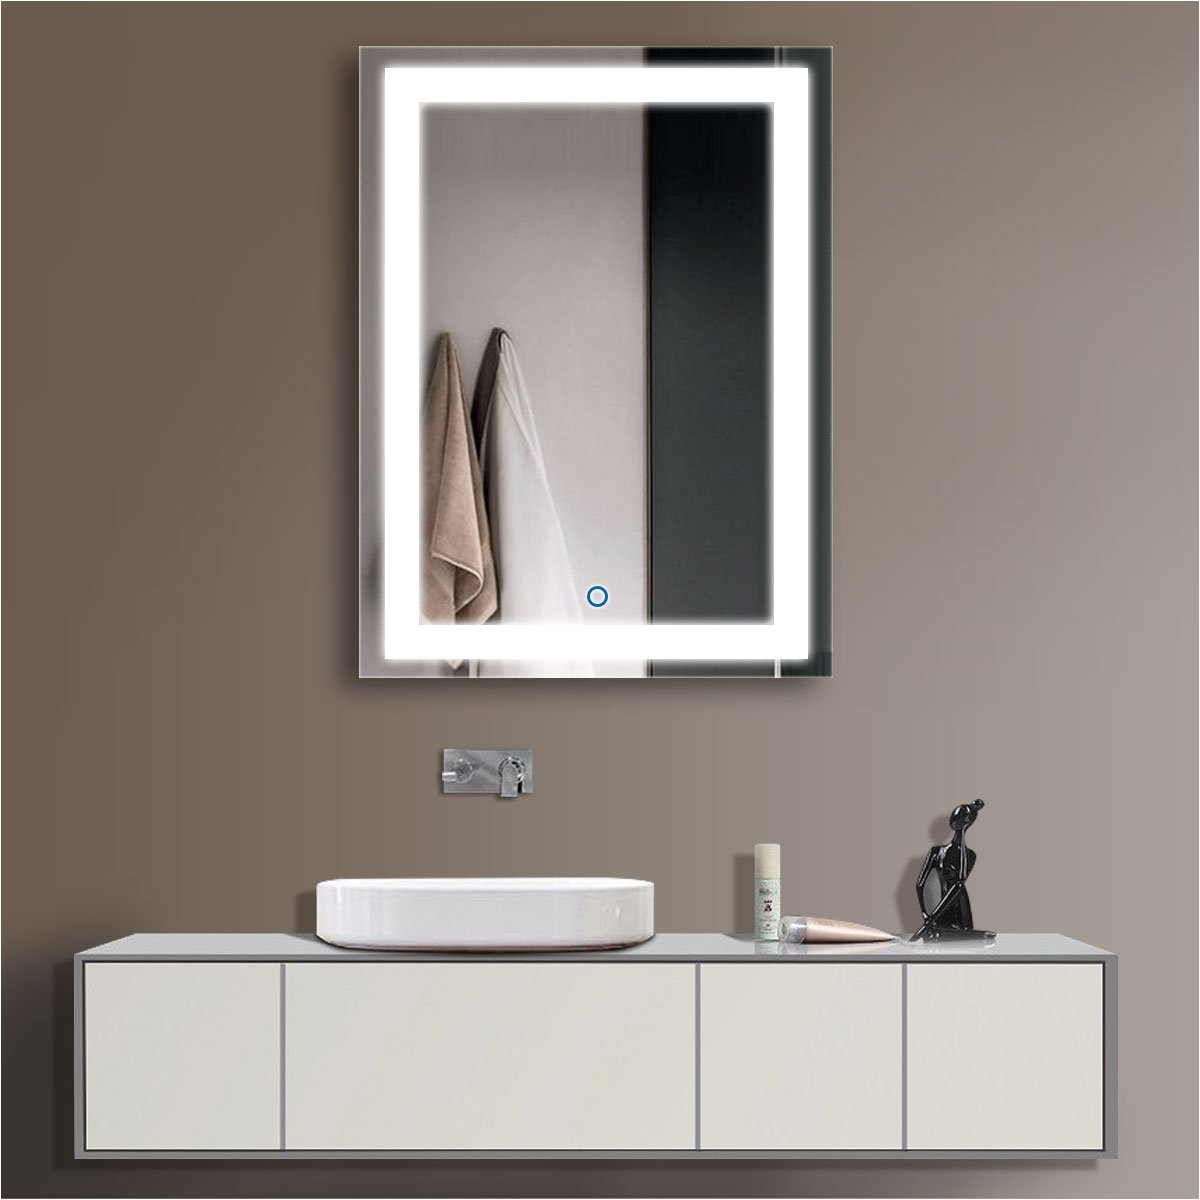 amazon com horizontal led bathroom silvered mirror with touch button d ck010 acdefg 24 x 32 ck010 home kitchen